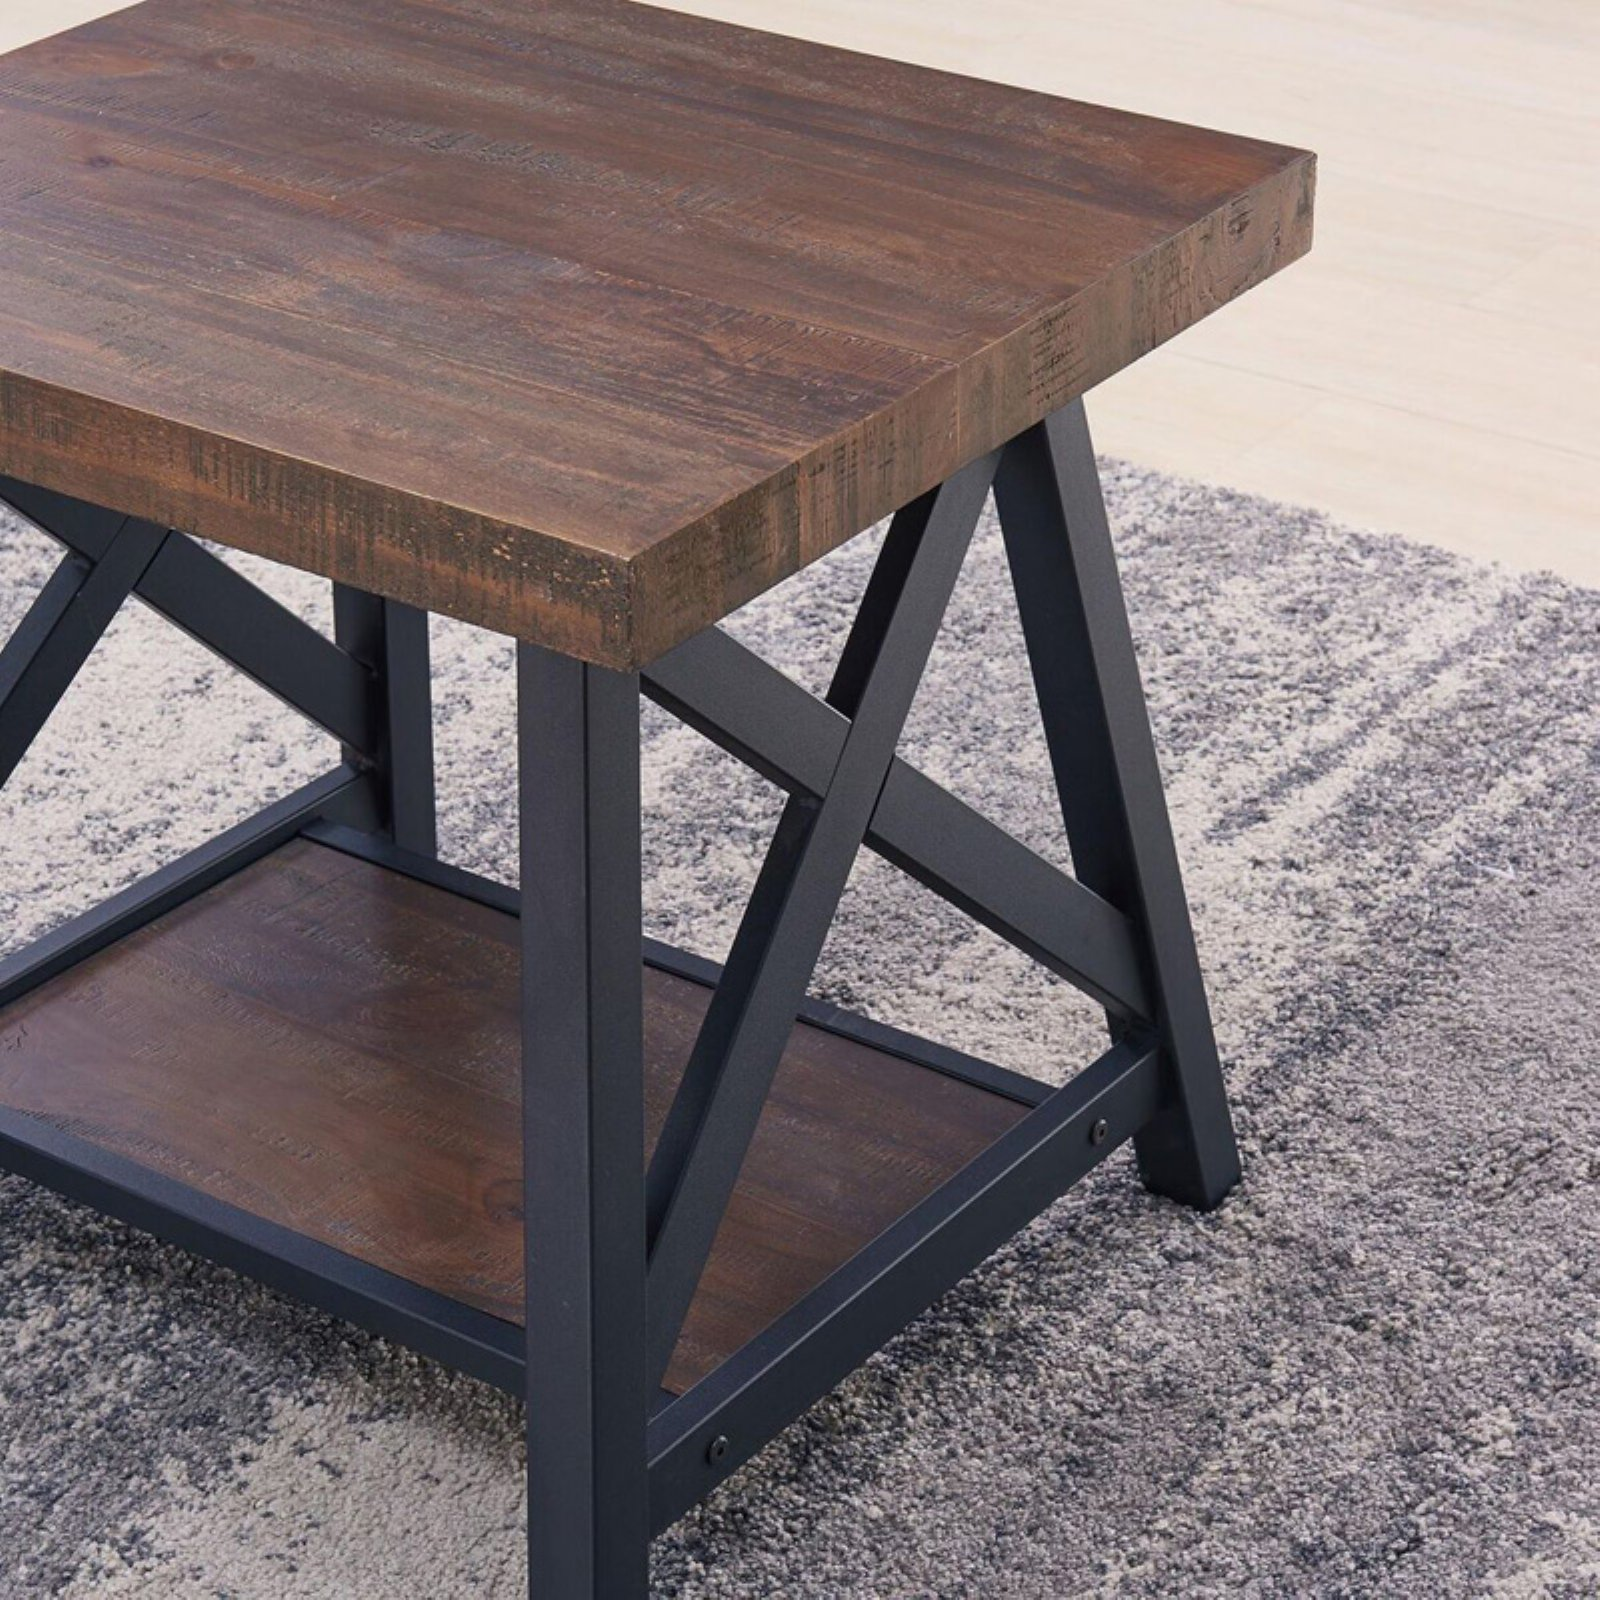 nspire rustic modern tier pine veneer and metal accent table detail middletown patio threshold windham door cabinet side with glass top small round garden cover battery power pack